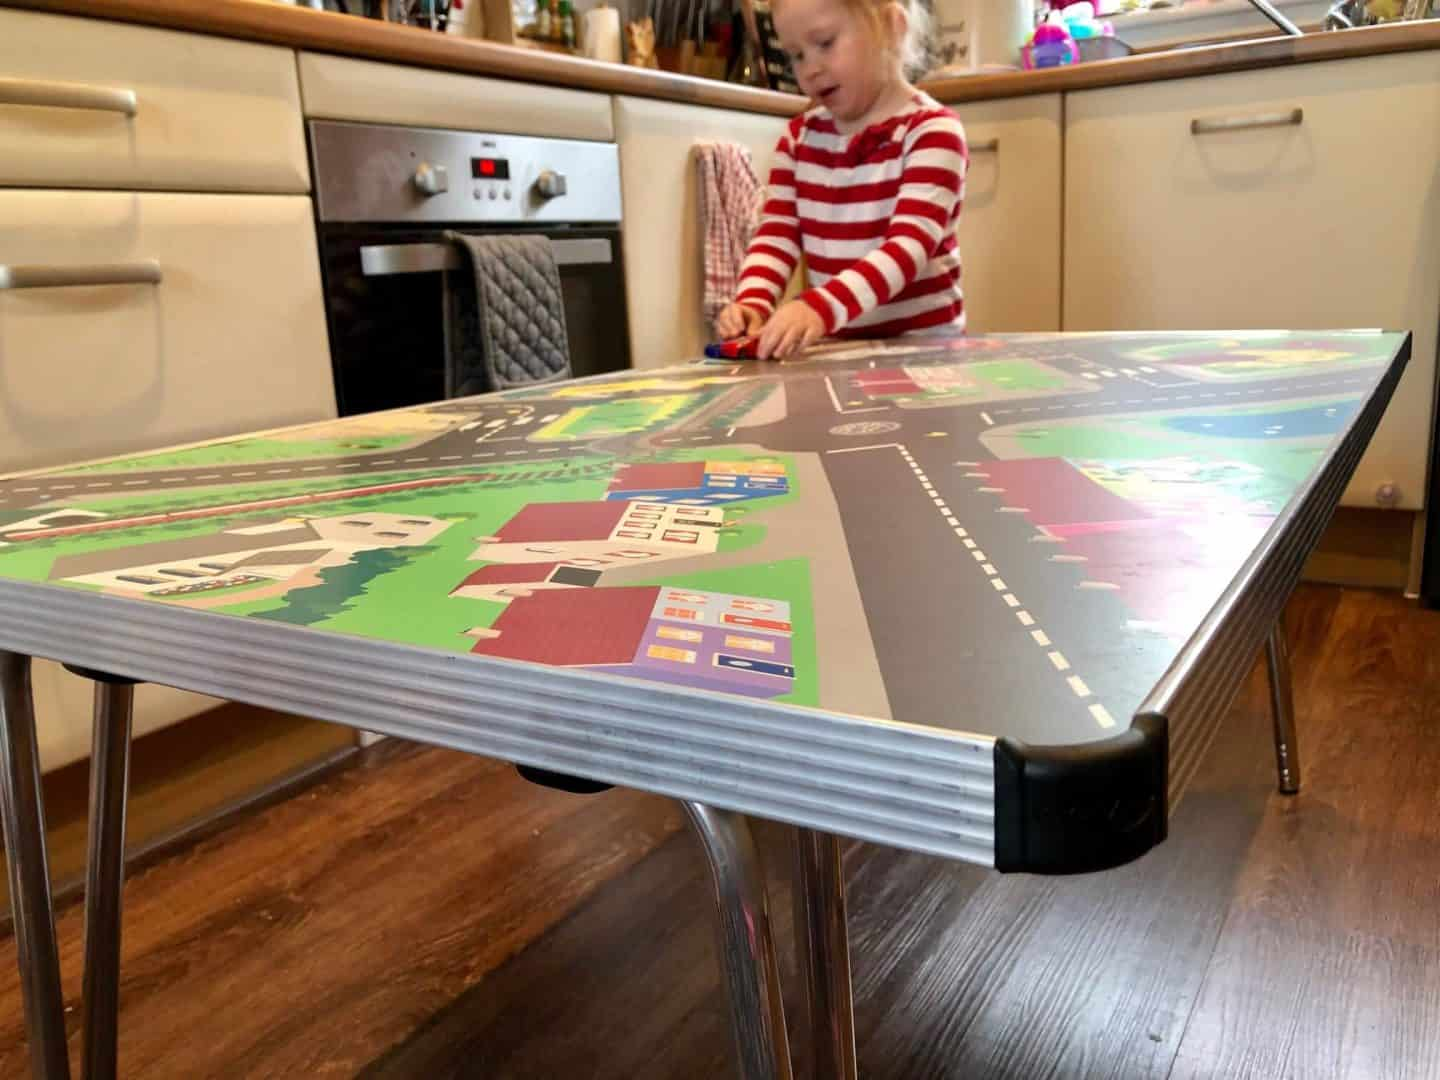 Playing with cars on the town activity table